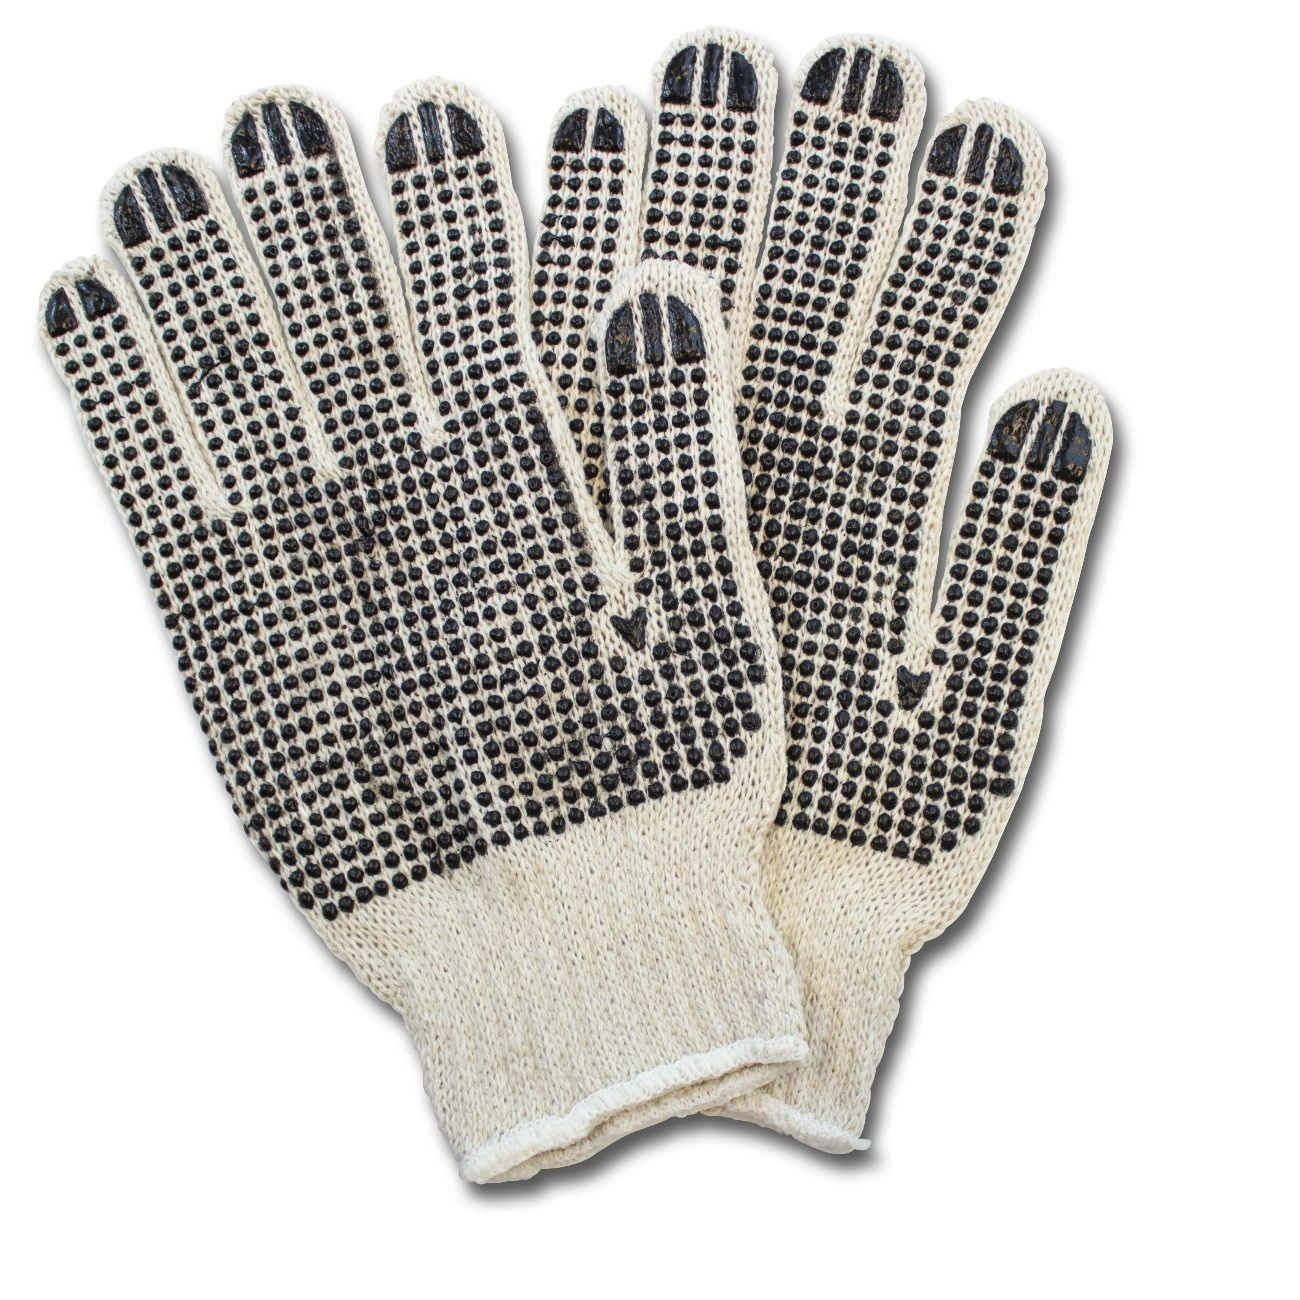 Dotted Knit Gloves